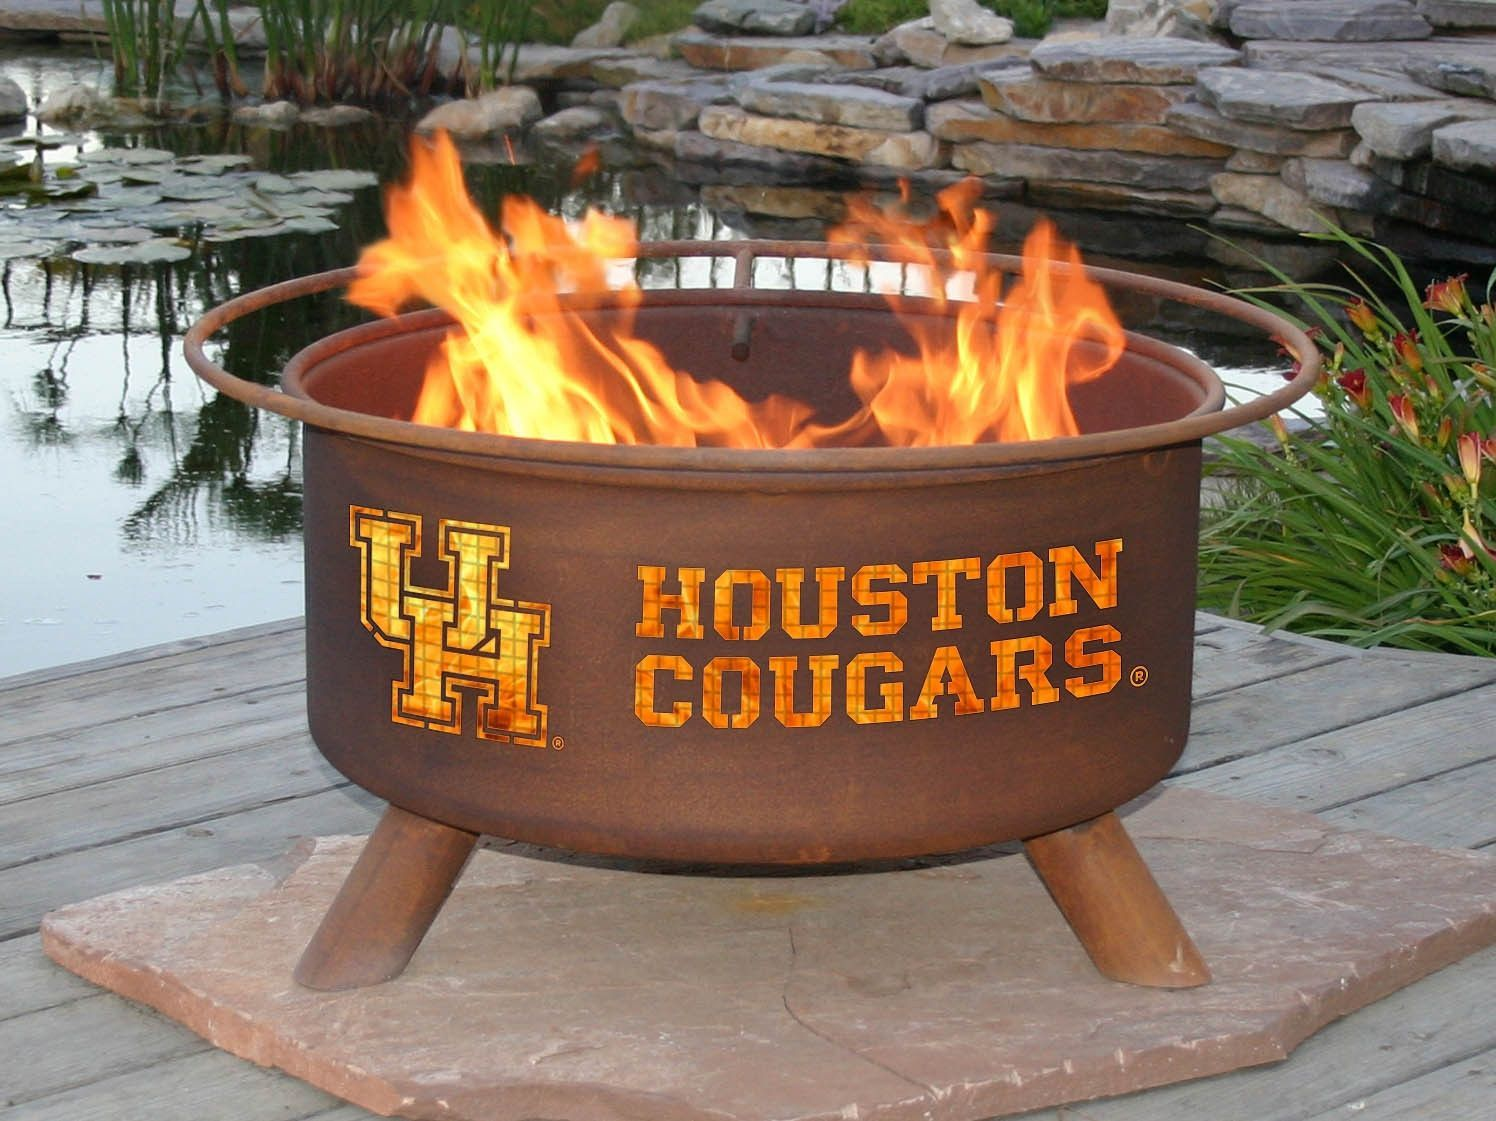 Fire pits always seem to instantly become the center of a great get  together. The - Fire Pits Always Seem To Instantly Become The Center Of A Great Get